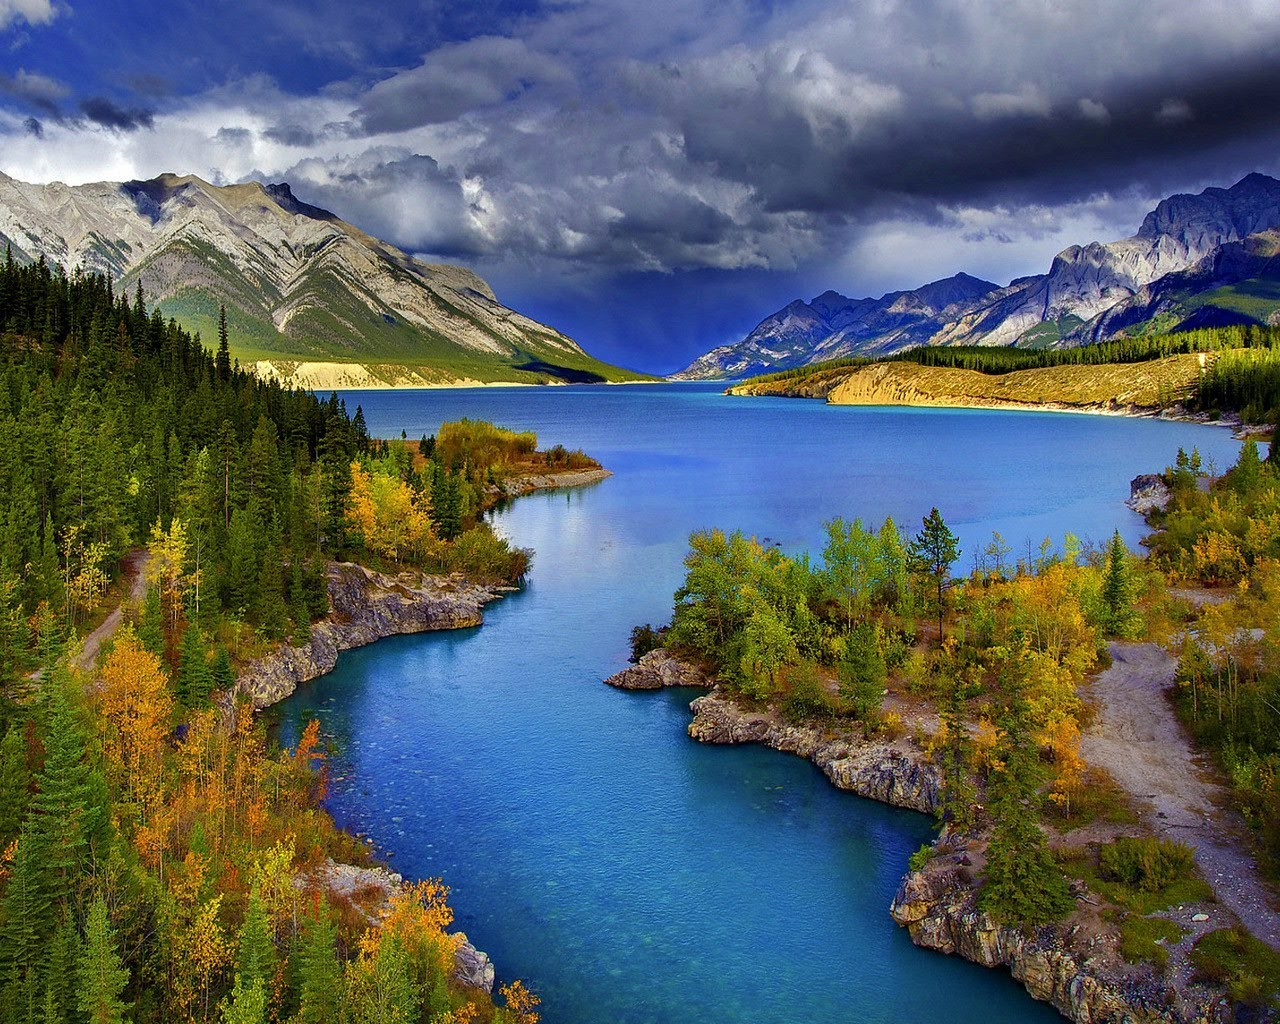 lake water nature reflection mountain travel landscape wood river outdoors fall scenic sky snow